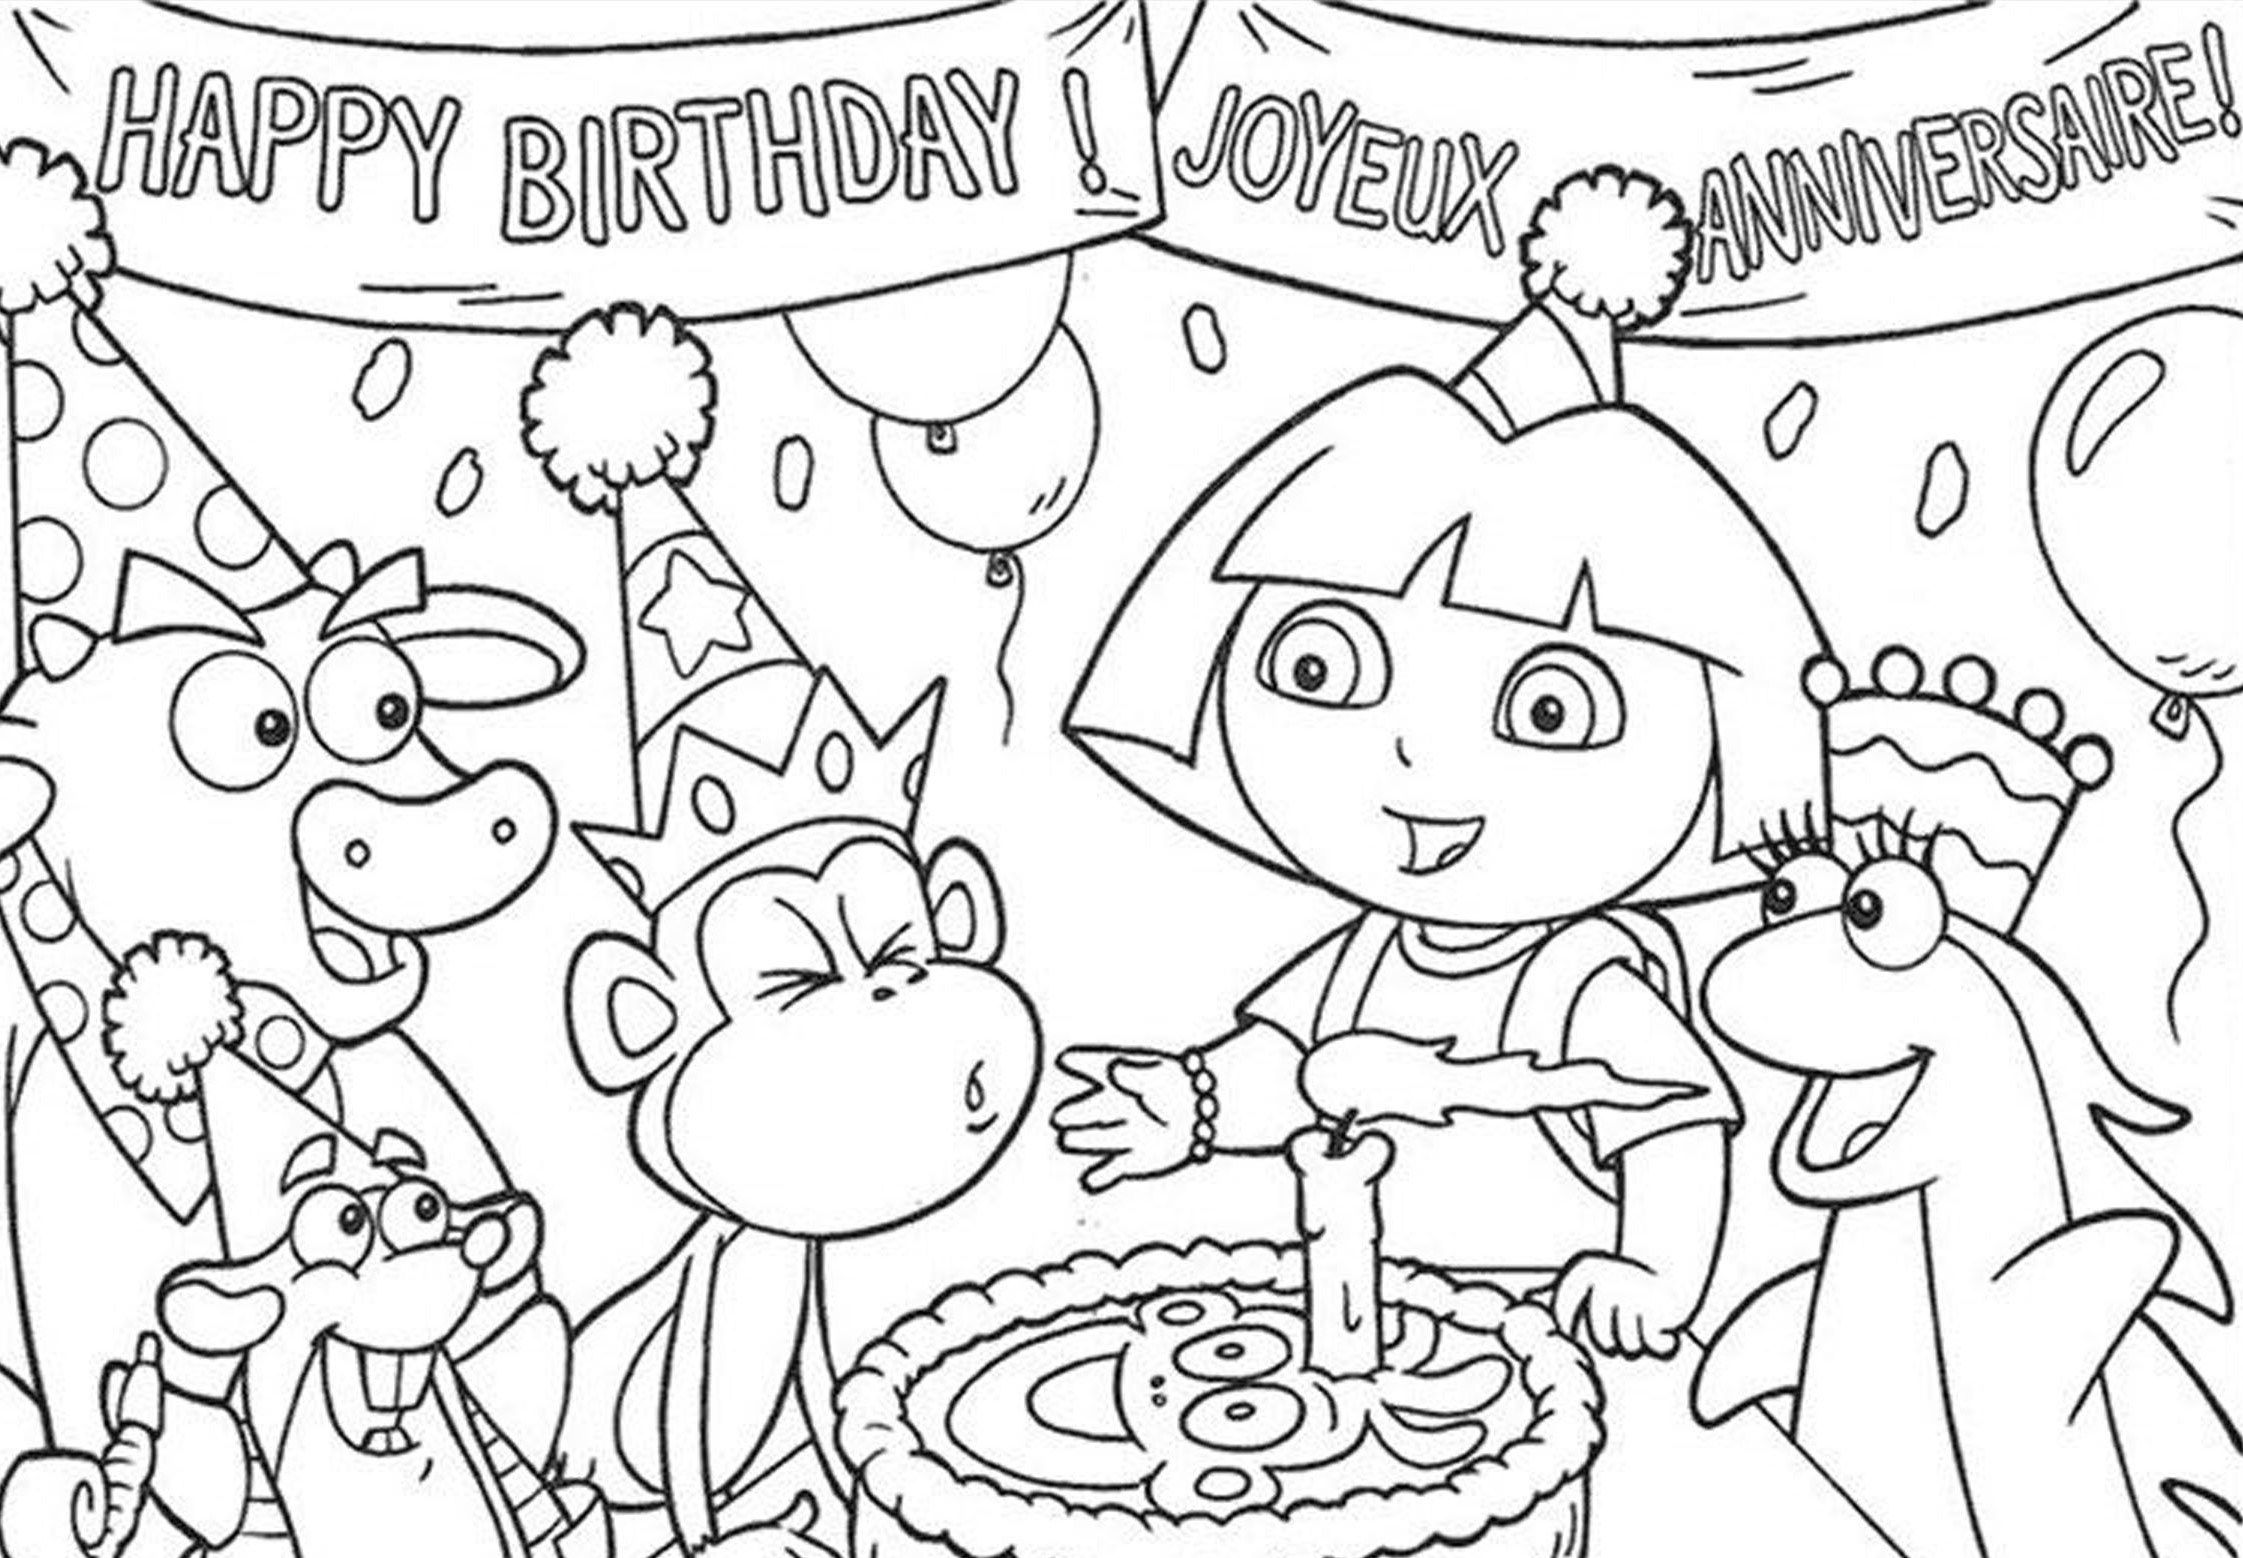 Princess coloring pages birthday - Coloring Book Pages Birthday Simple Dora Princess Coloring Pages With Dora Coloring Pages On